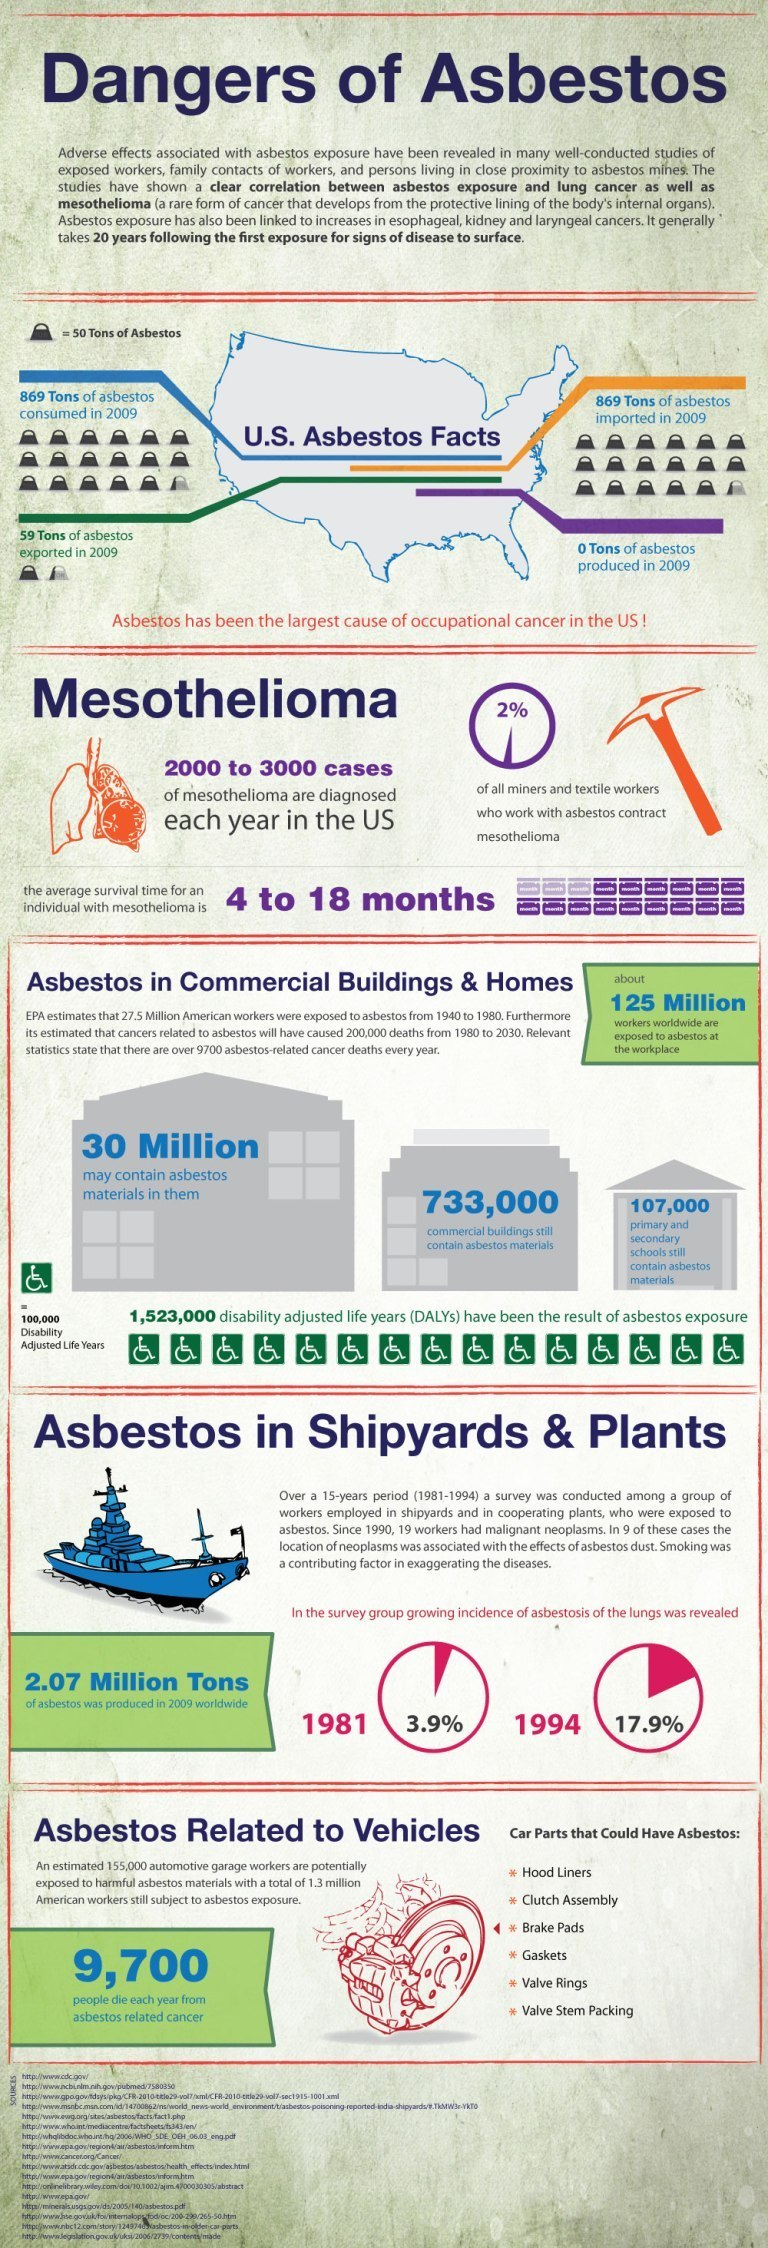 Dangers of Asbestos Summary Infographic